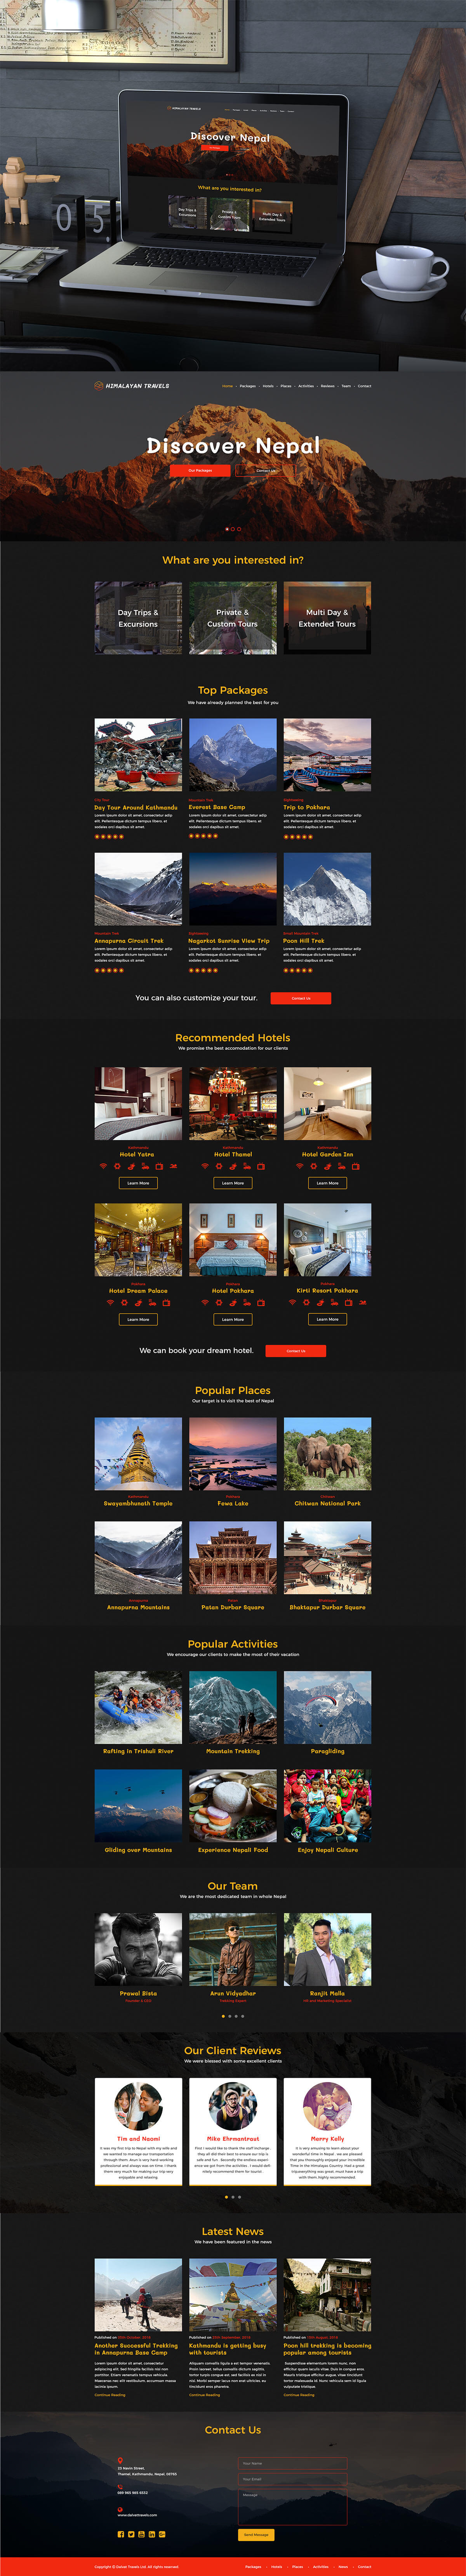 Free Himalayan Travels PSD Template